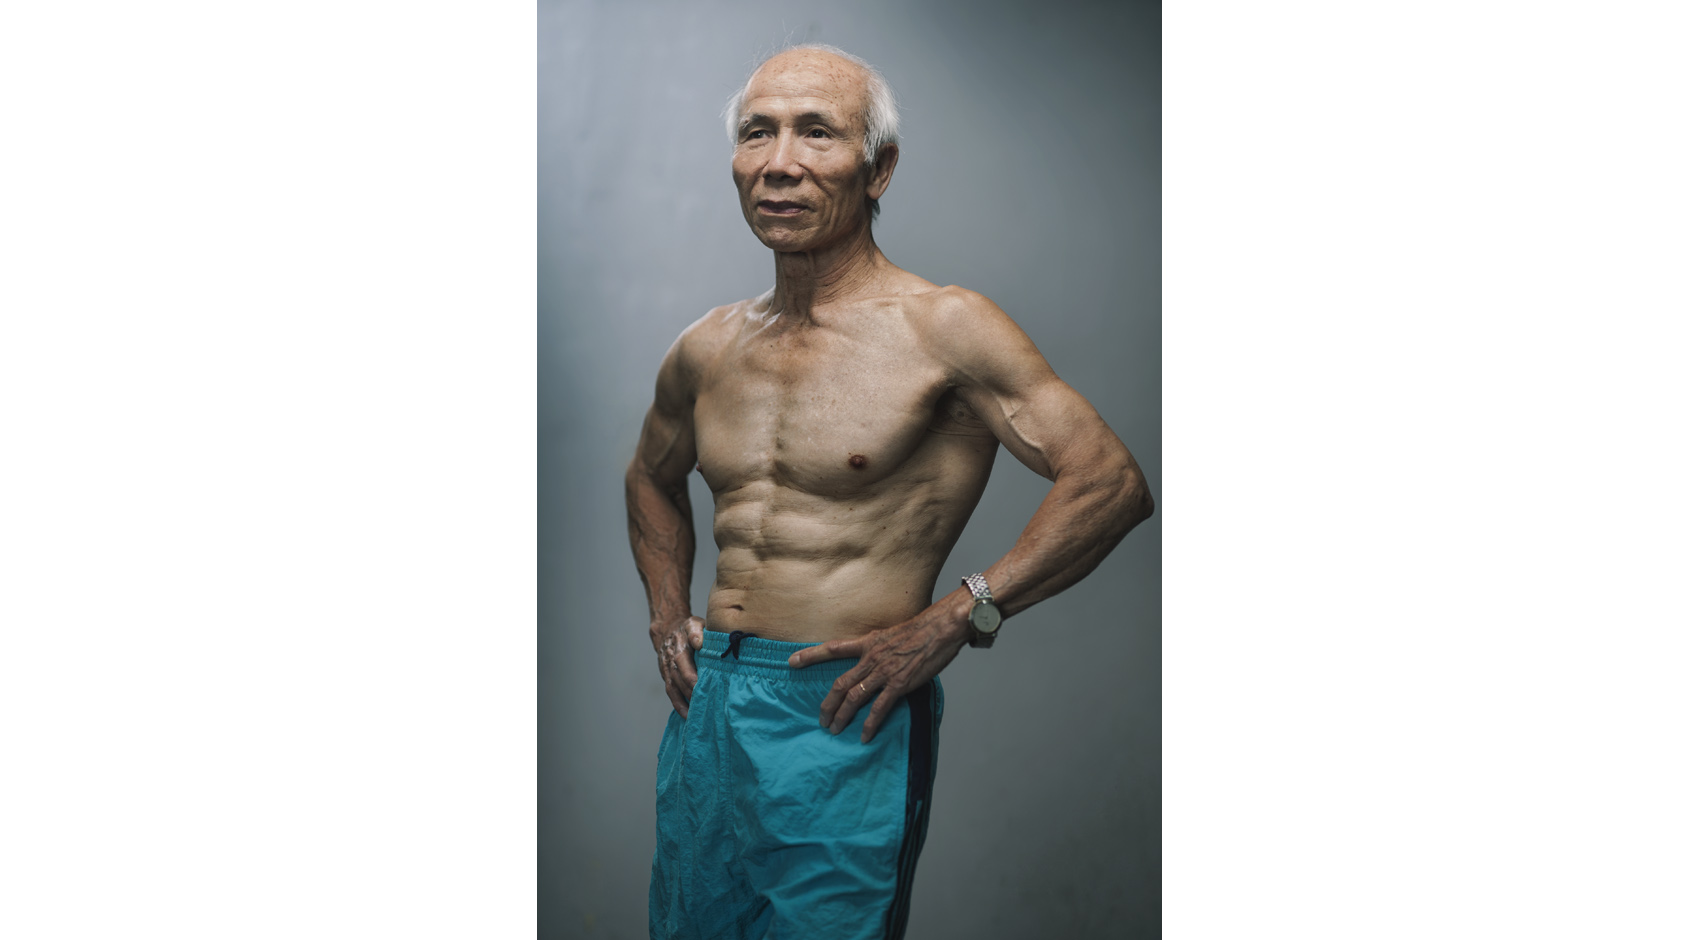 Men Over 50 - Thanh